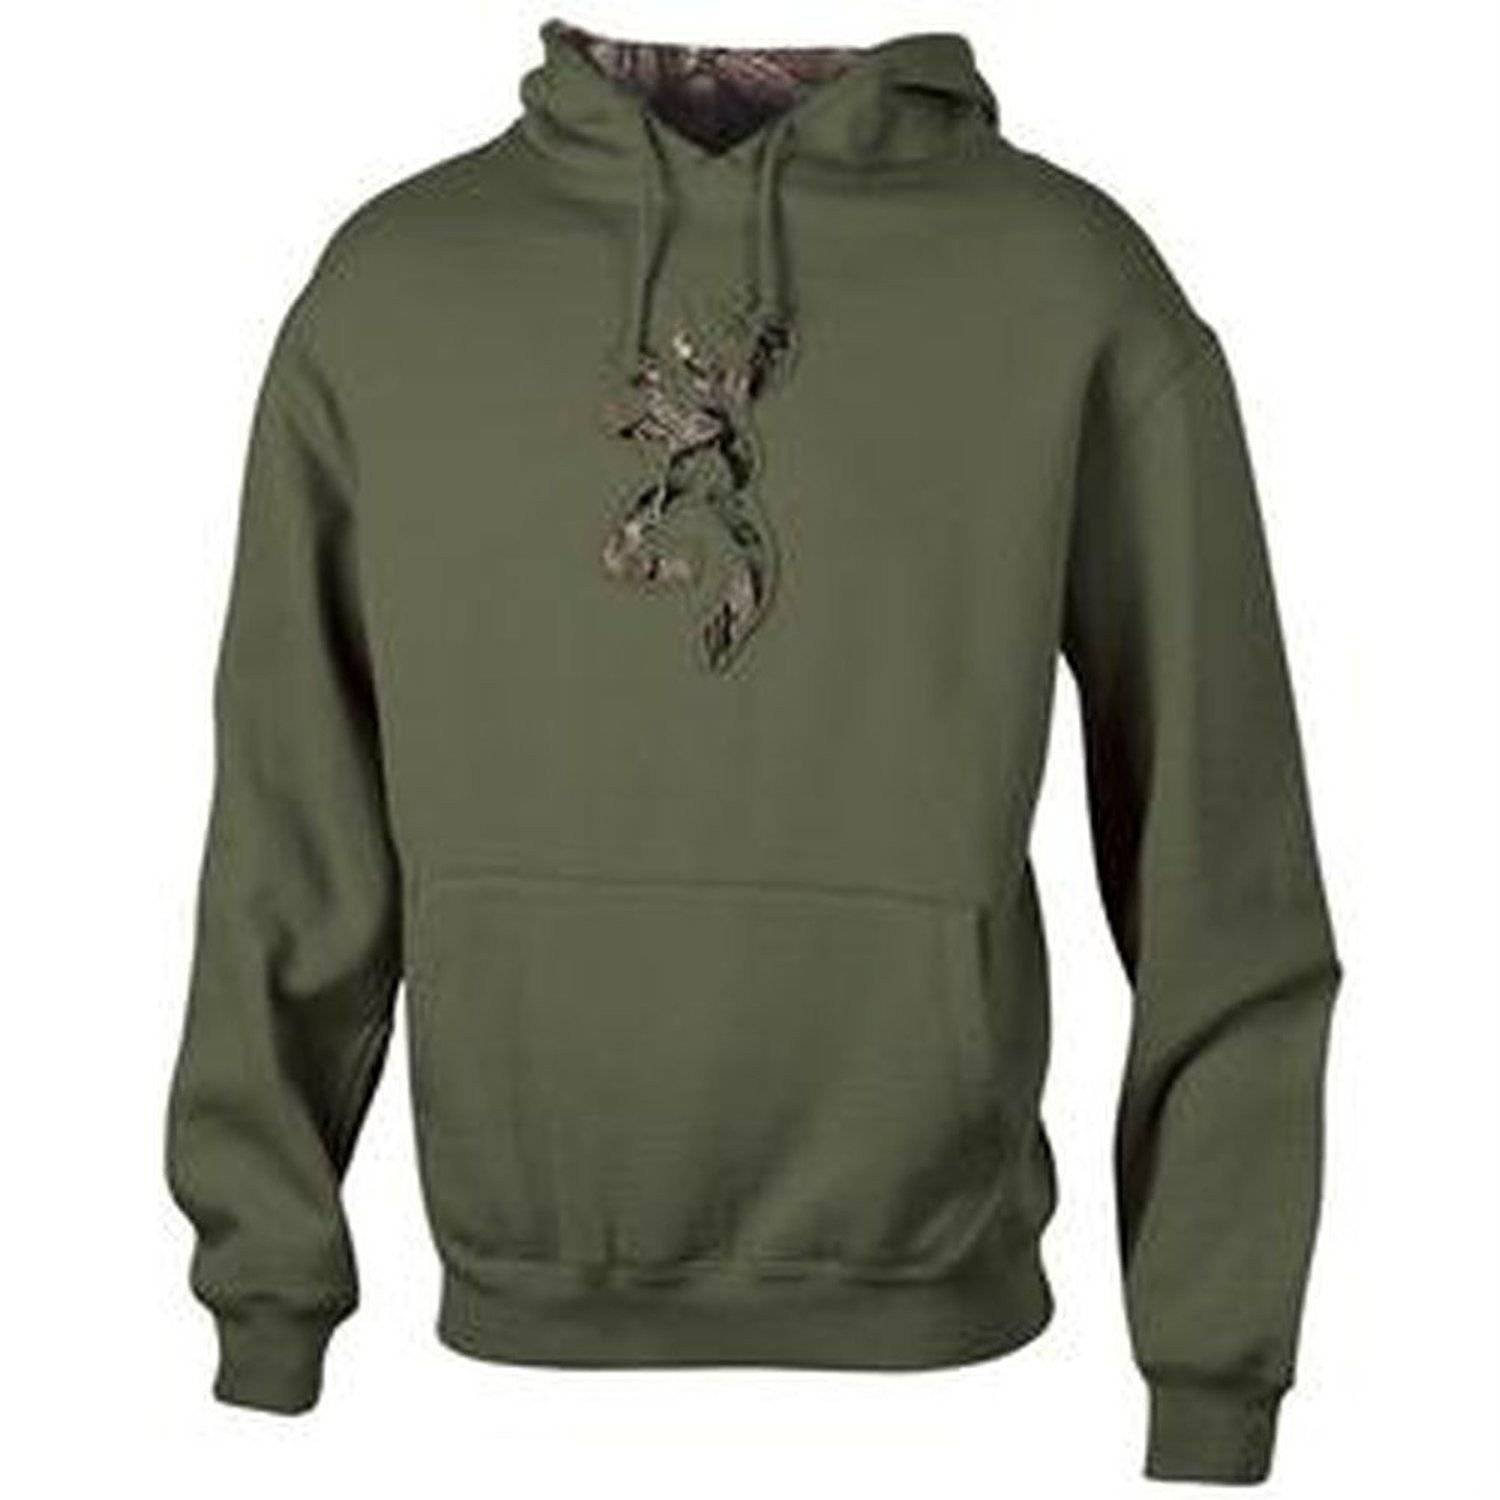 ef1c1572e4b Details about Mens NWT Browning Buckmark Camo Logo Sweatshirt Hoodie Clover  Green